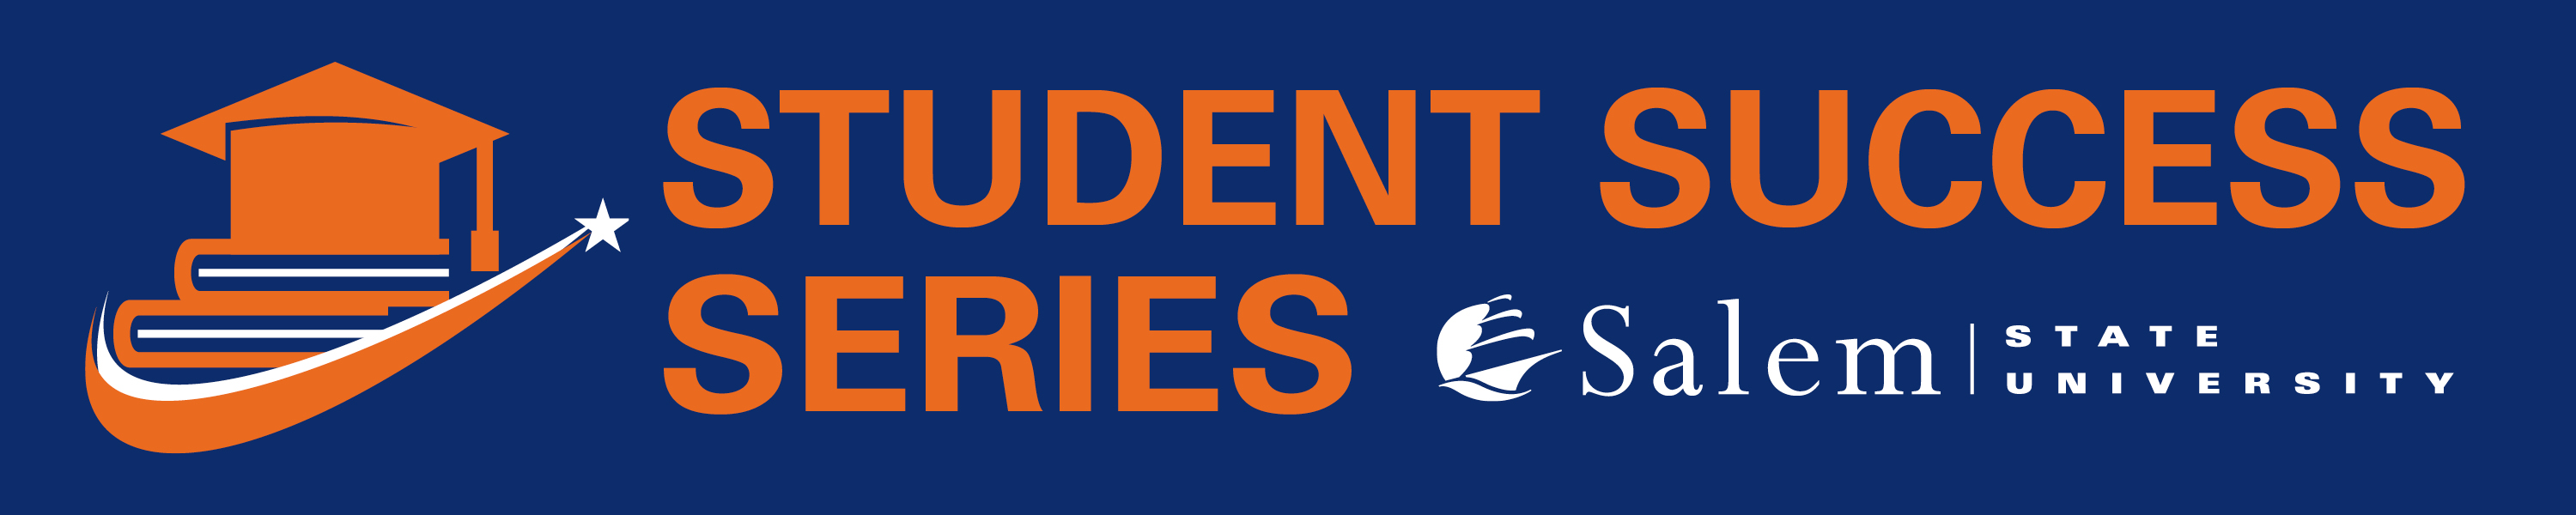 """Image of Diploma and books with text """"Student Success Series"""" and university lo…"""